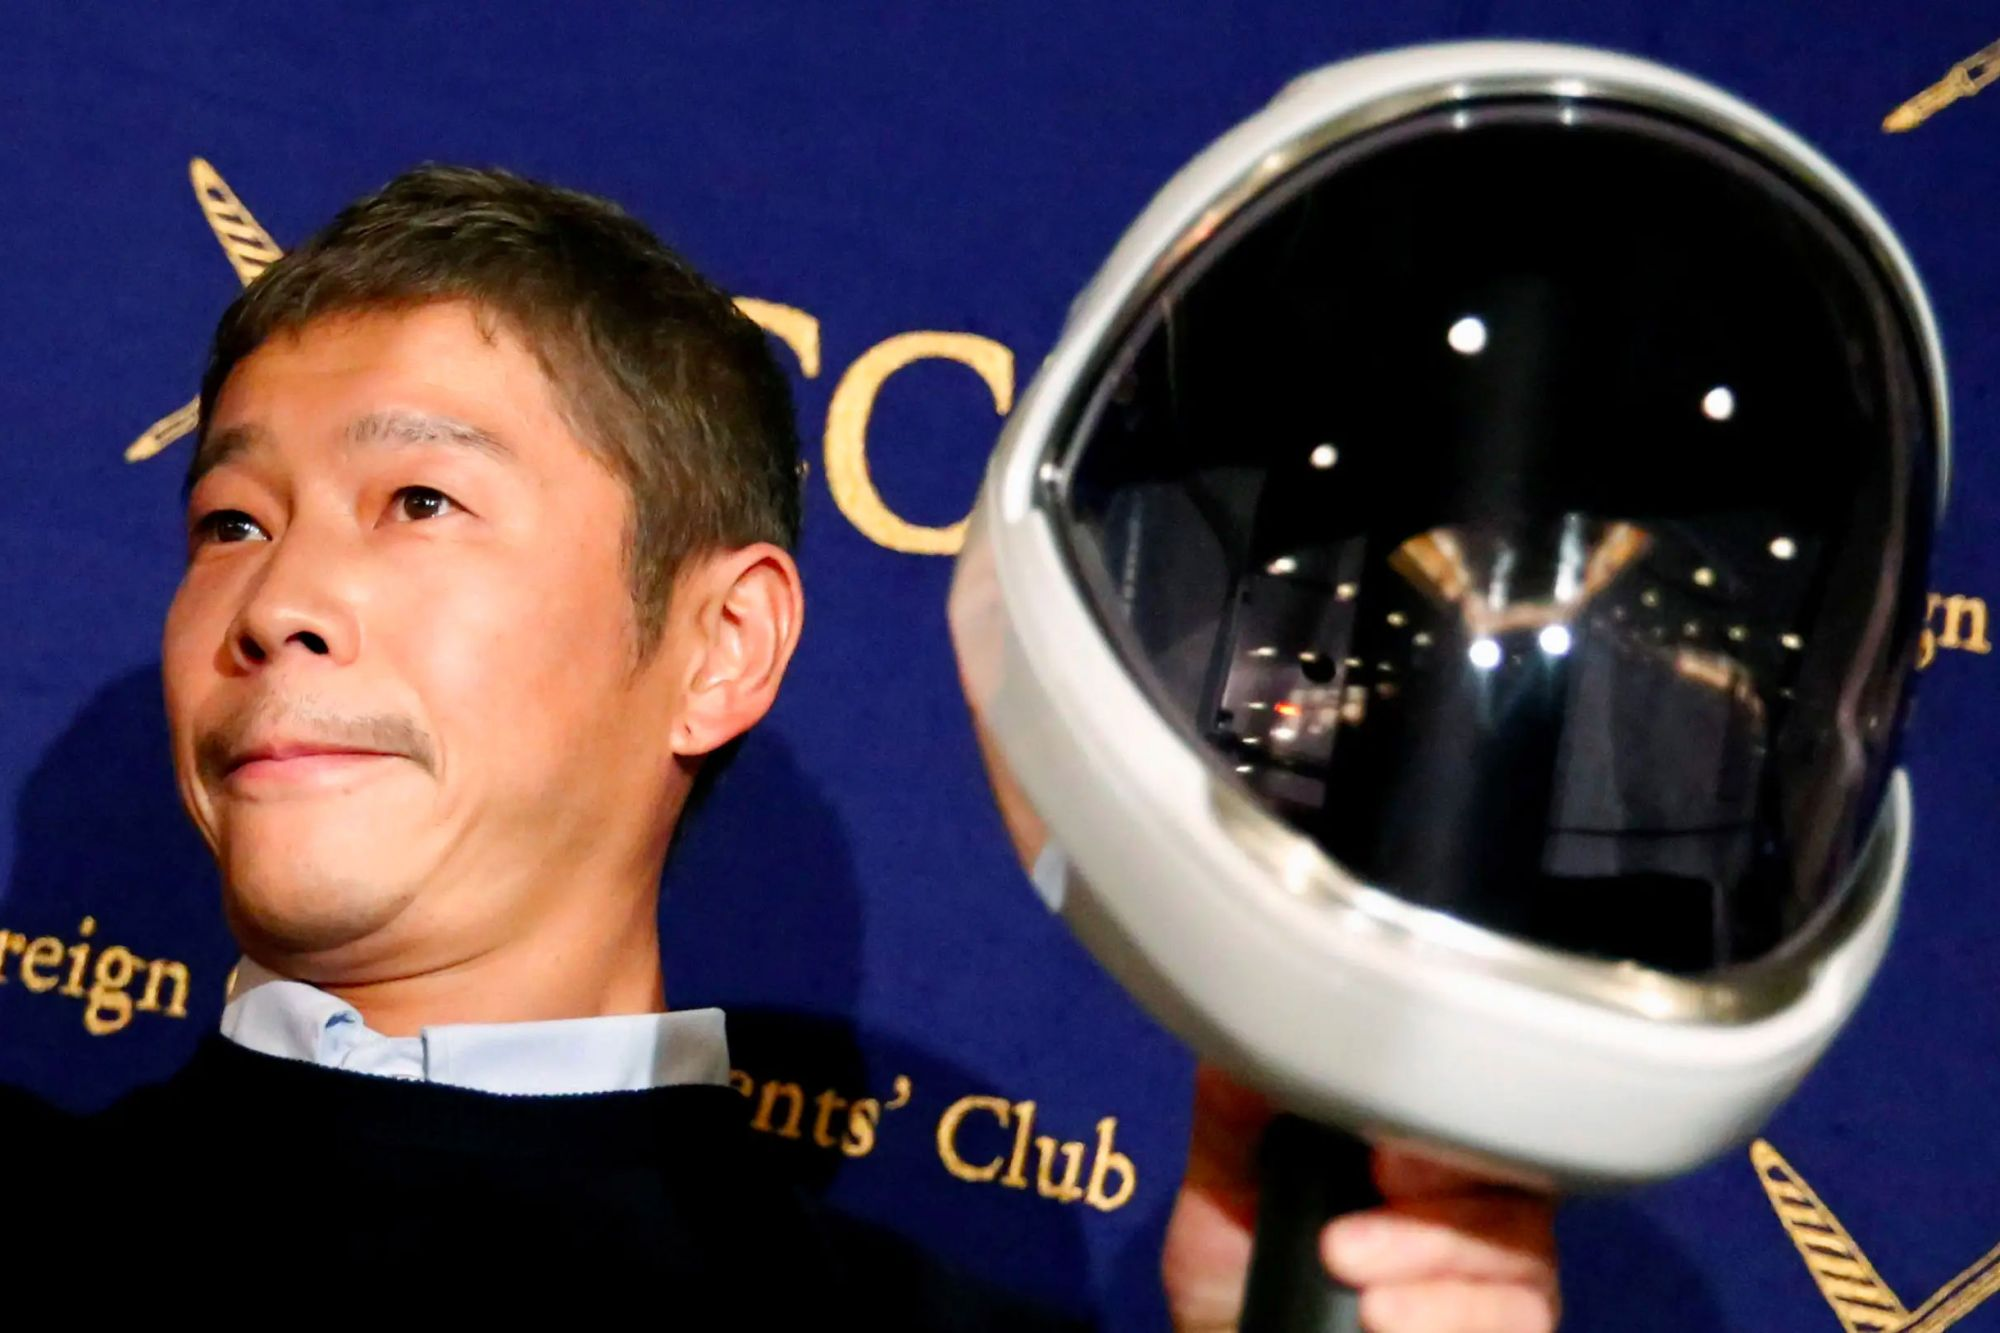 For Social Experiment, Japanese Billionaire Gives $9 Million to People On Twitter